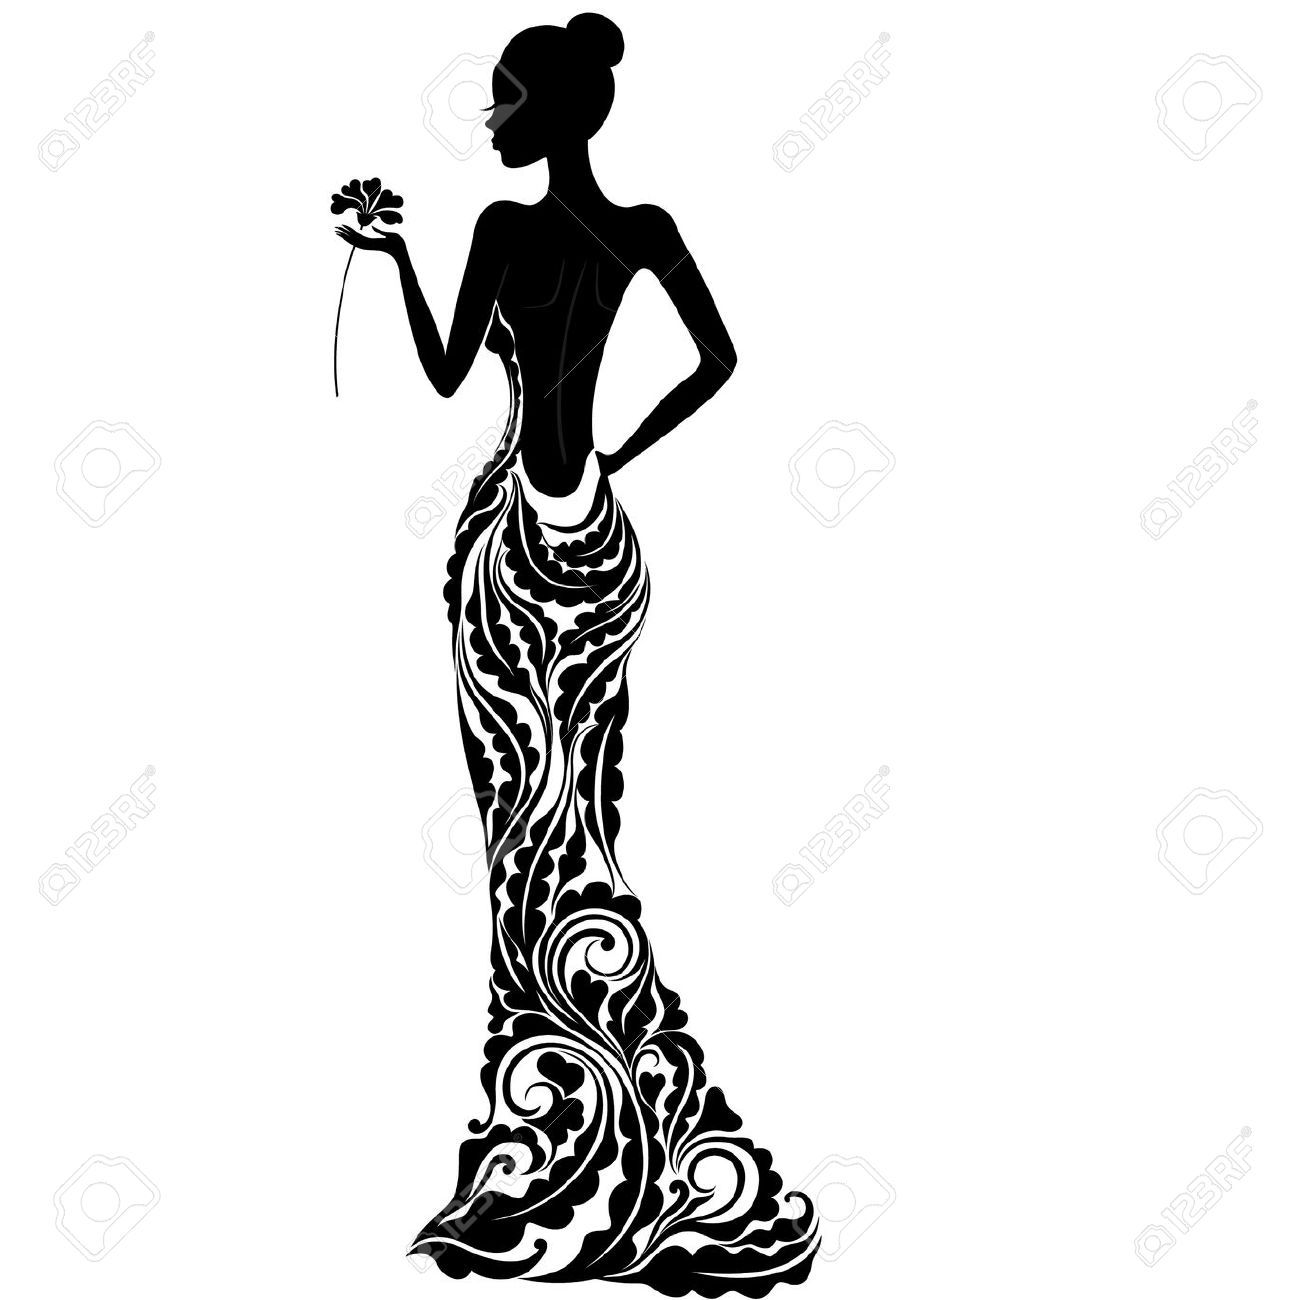 Silhouette Of Girl In Dress